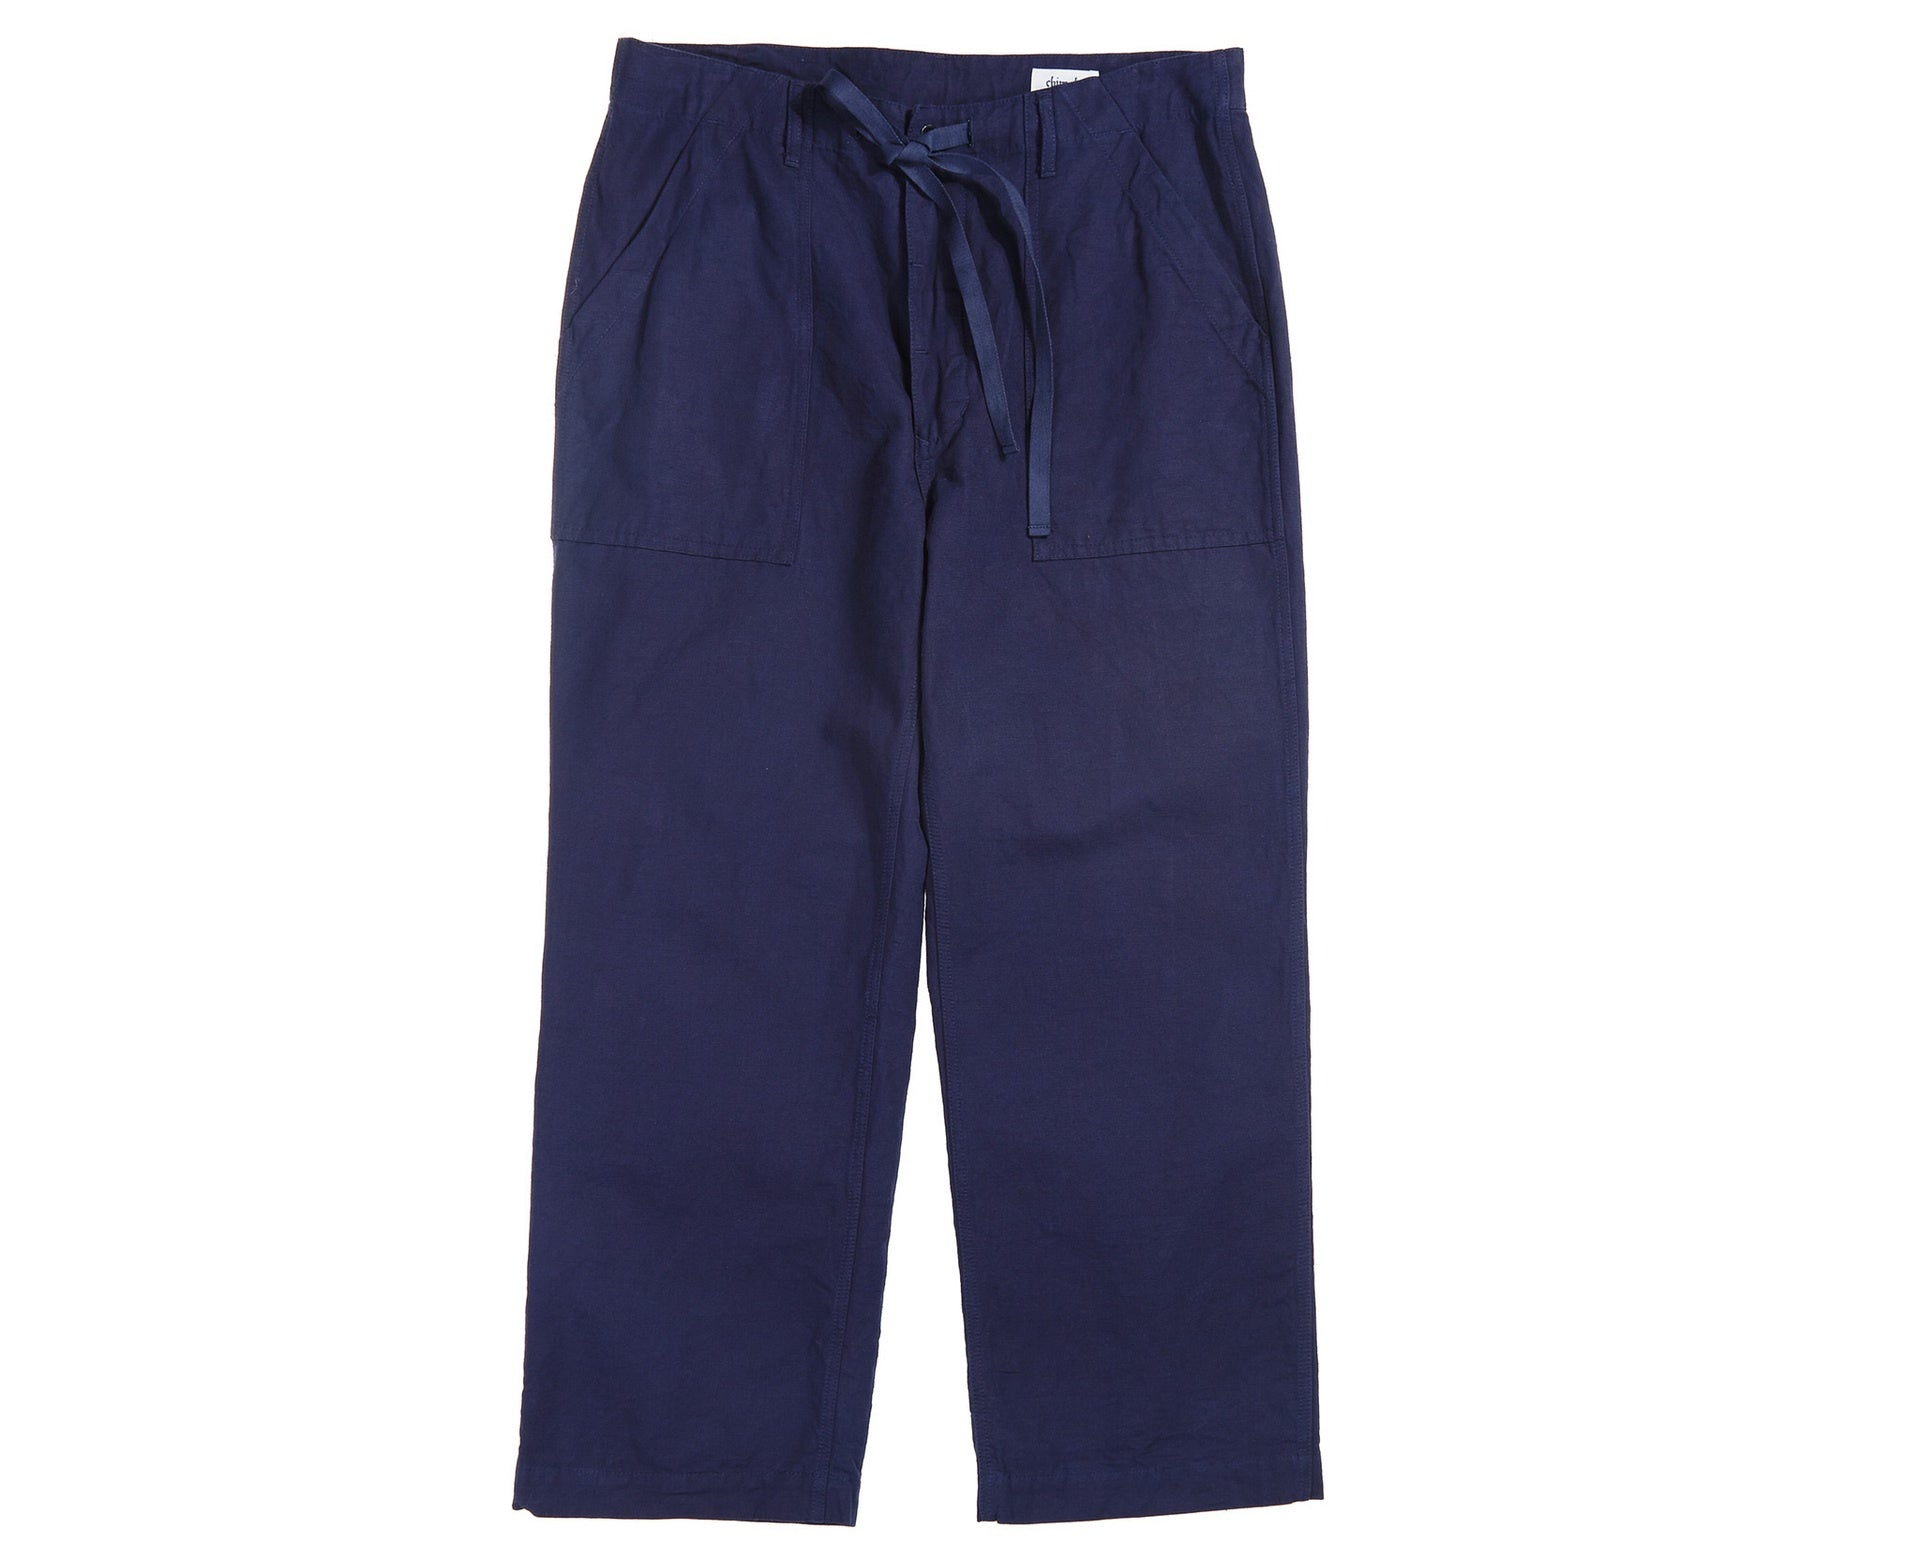 Chimala Indigo Railroad Drawstring Pants